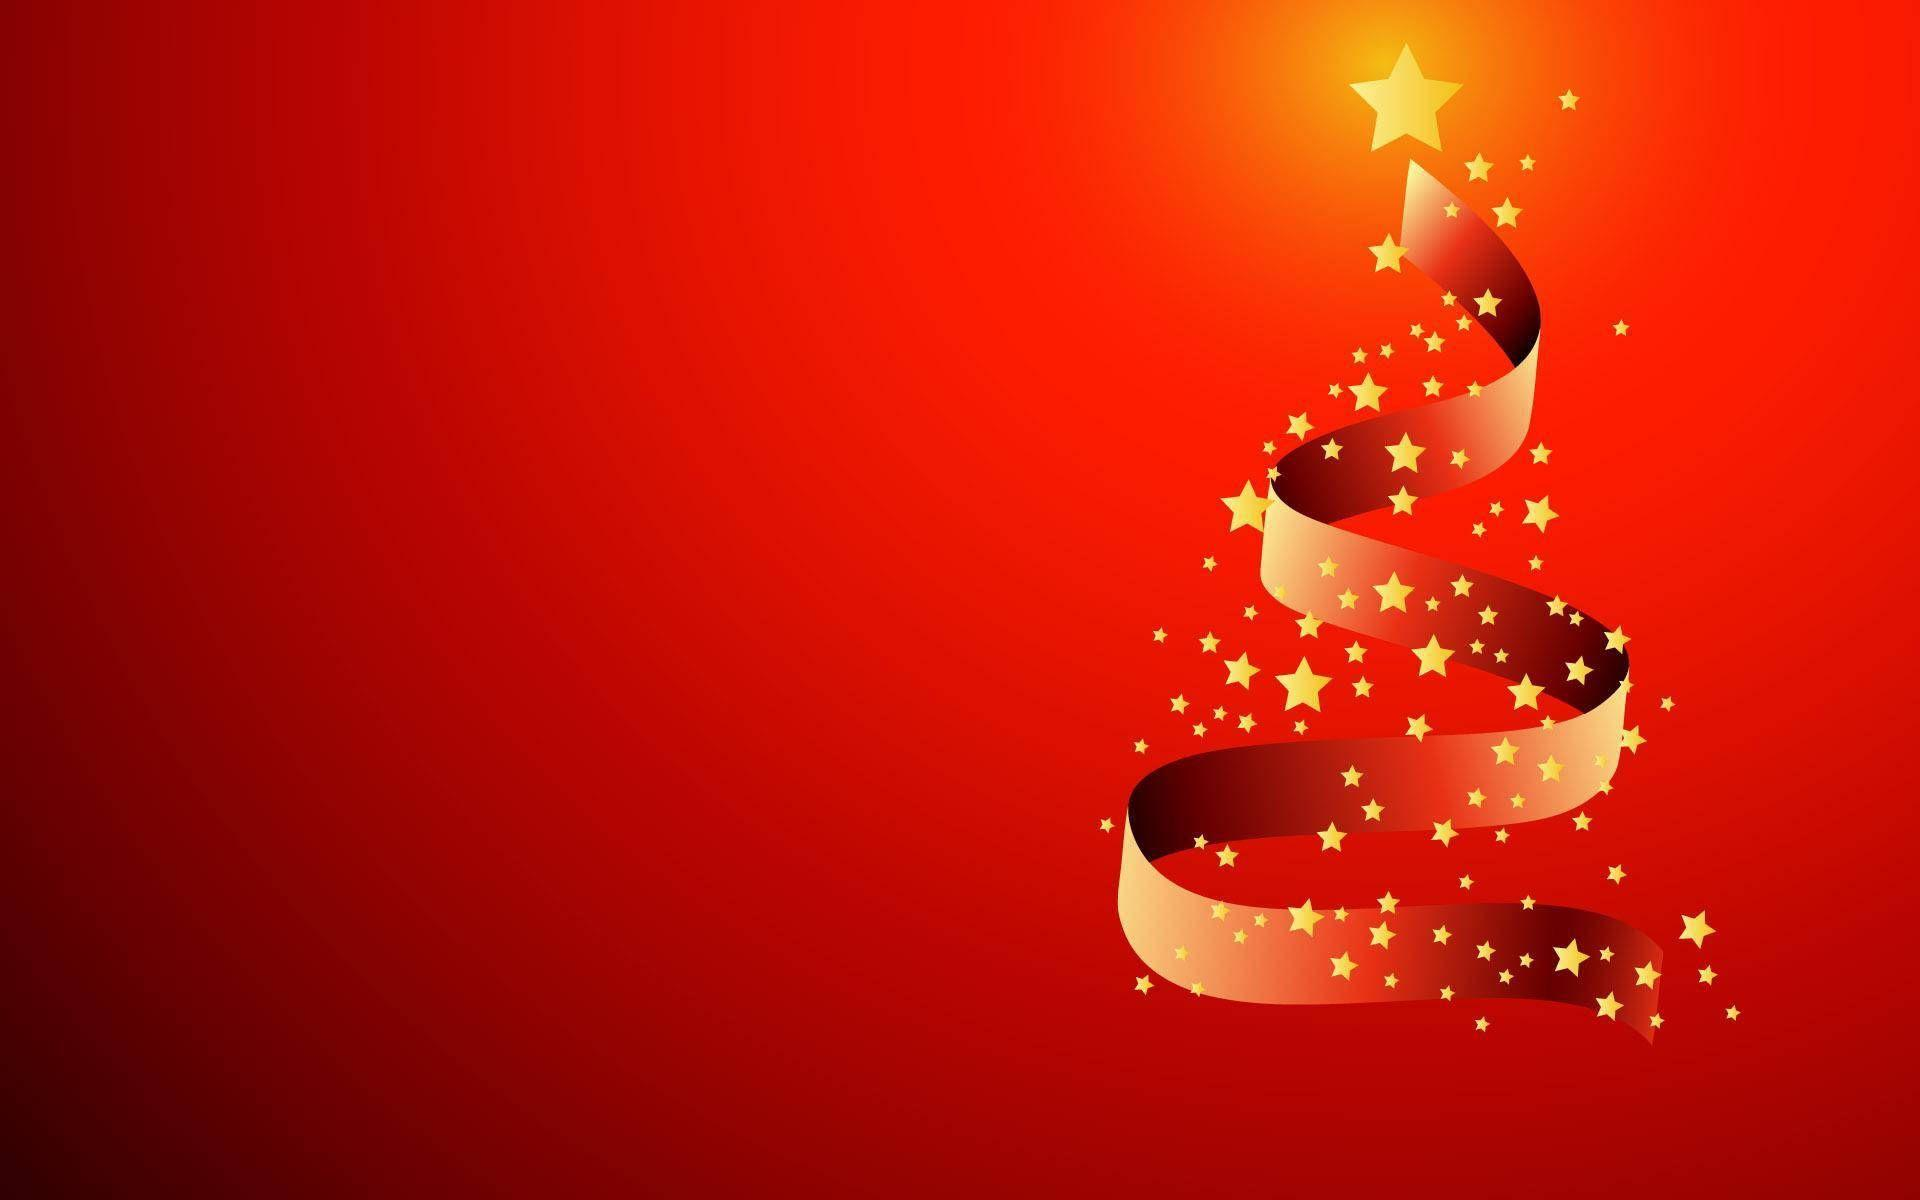 Christmas Backgrounds For Pictures - Wallpaper Cave